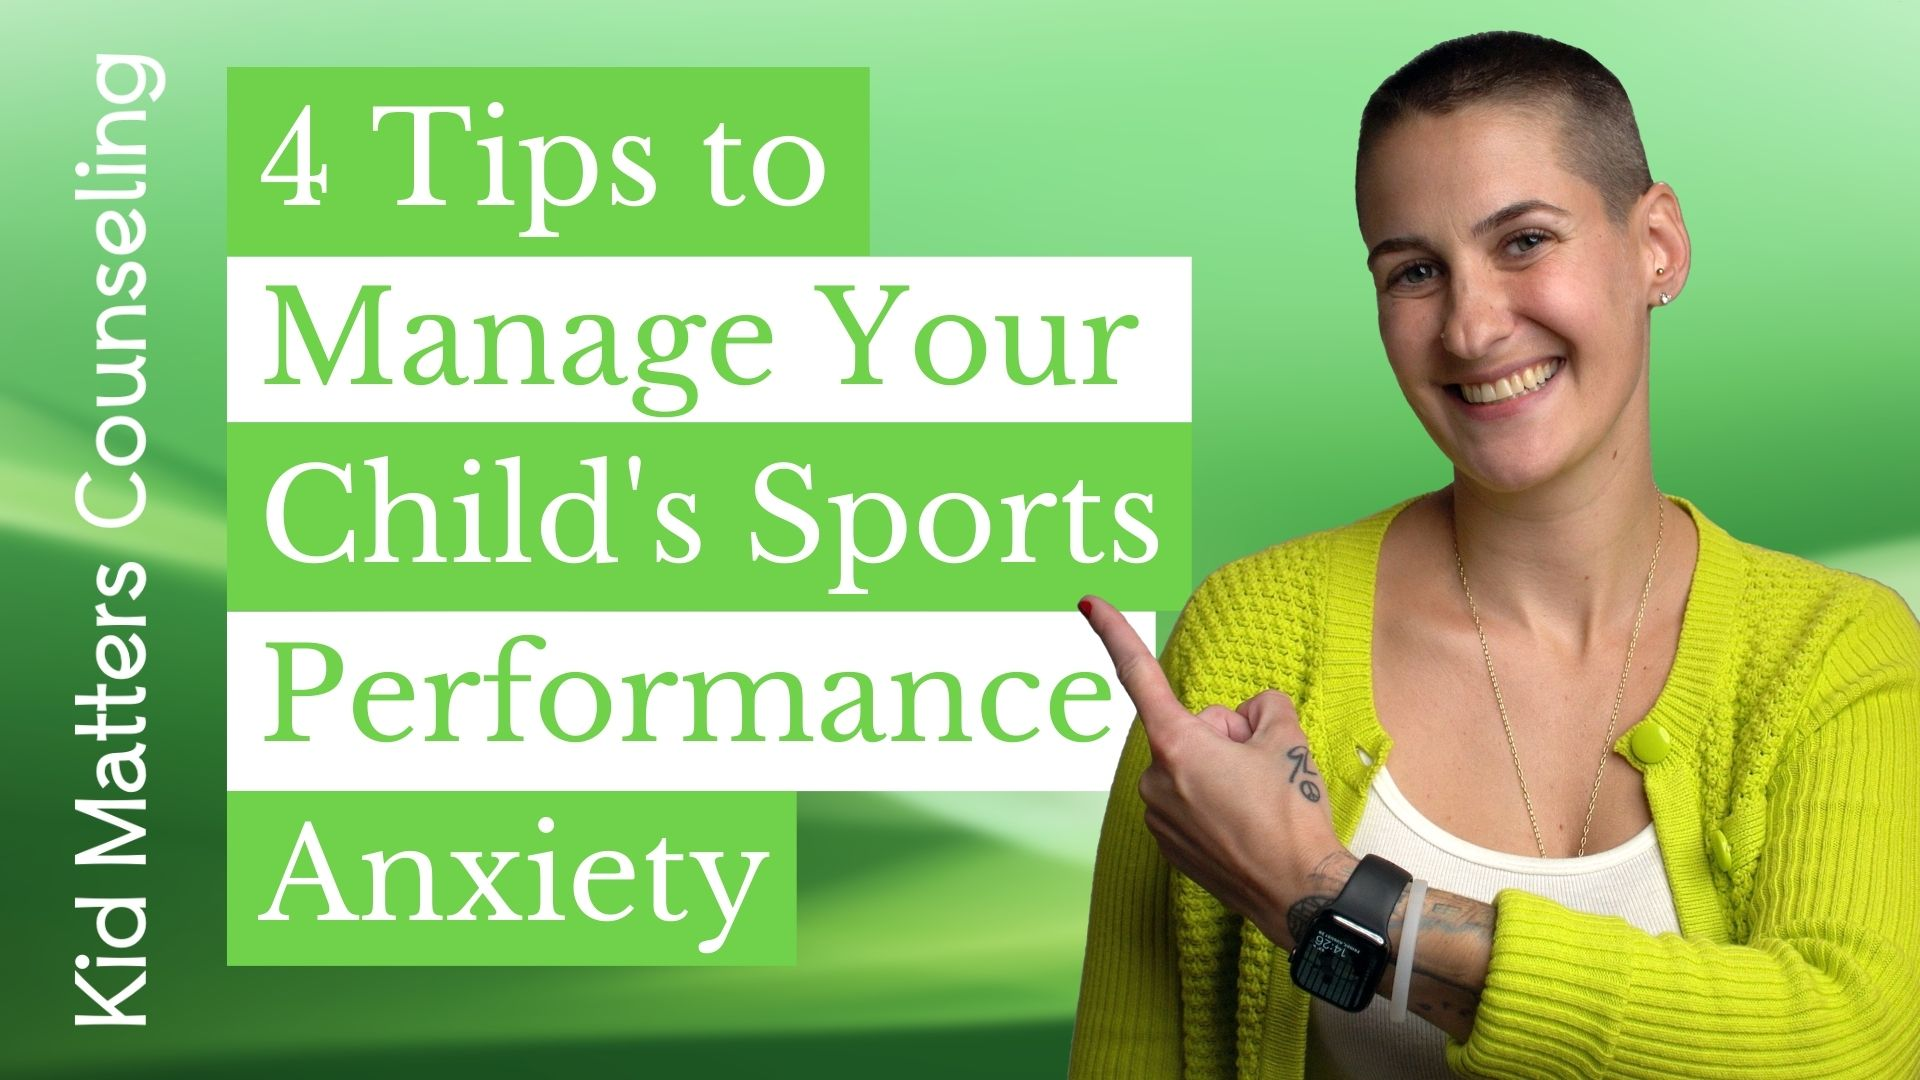 4 Tips to Manage Your Child's Sports Performance Anxiety